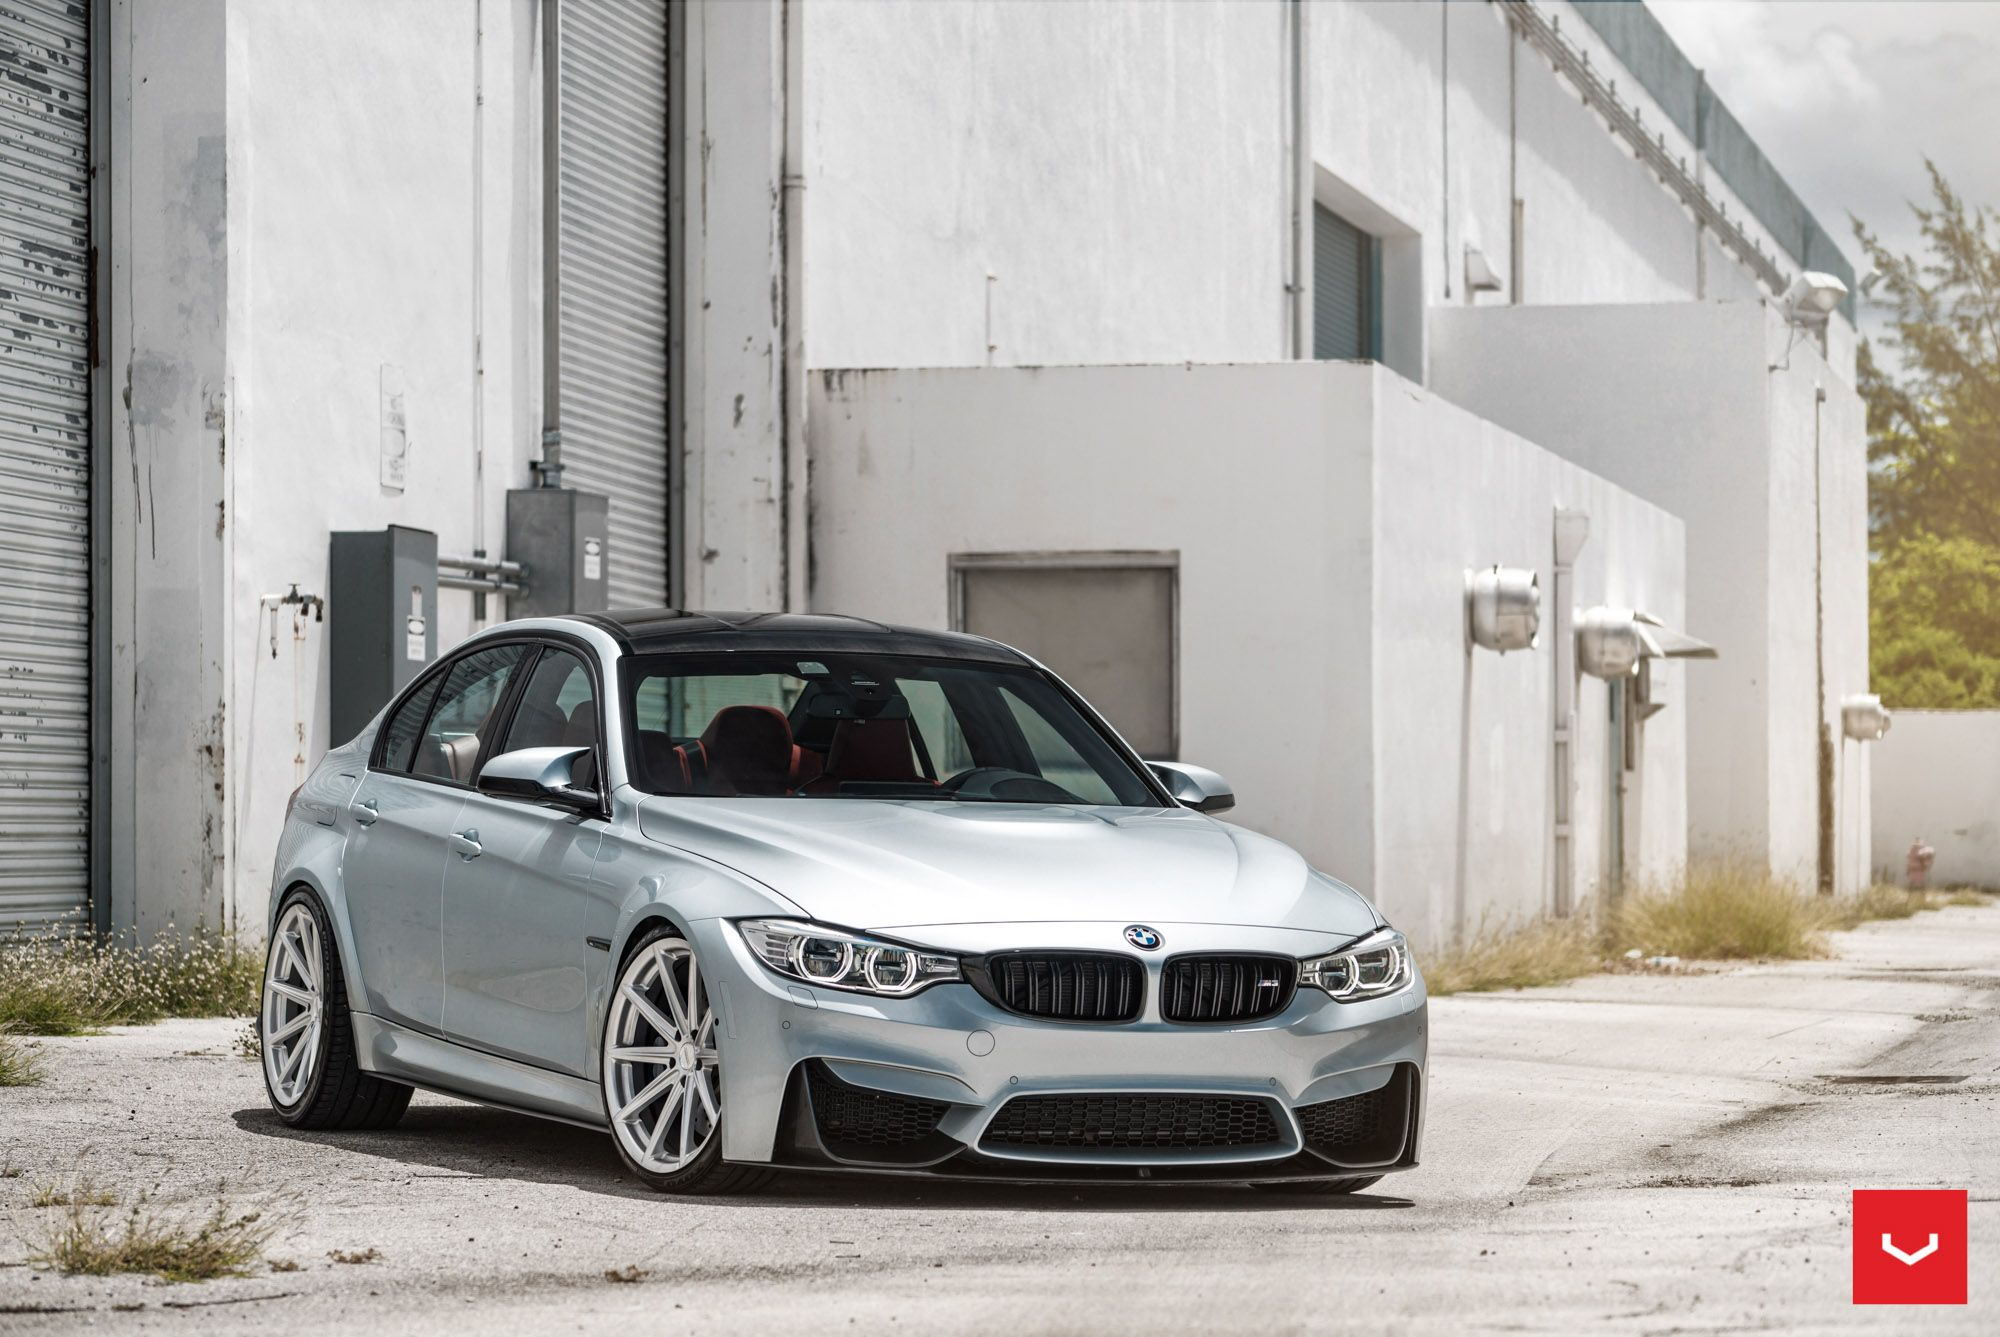 Bmw F80 M3 Sedan Silverstone Mperformance Xdrive